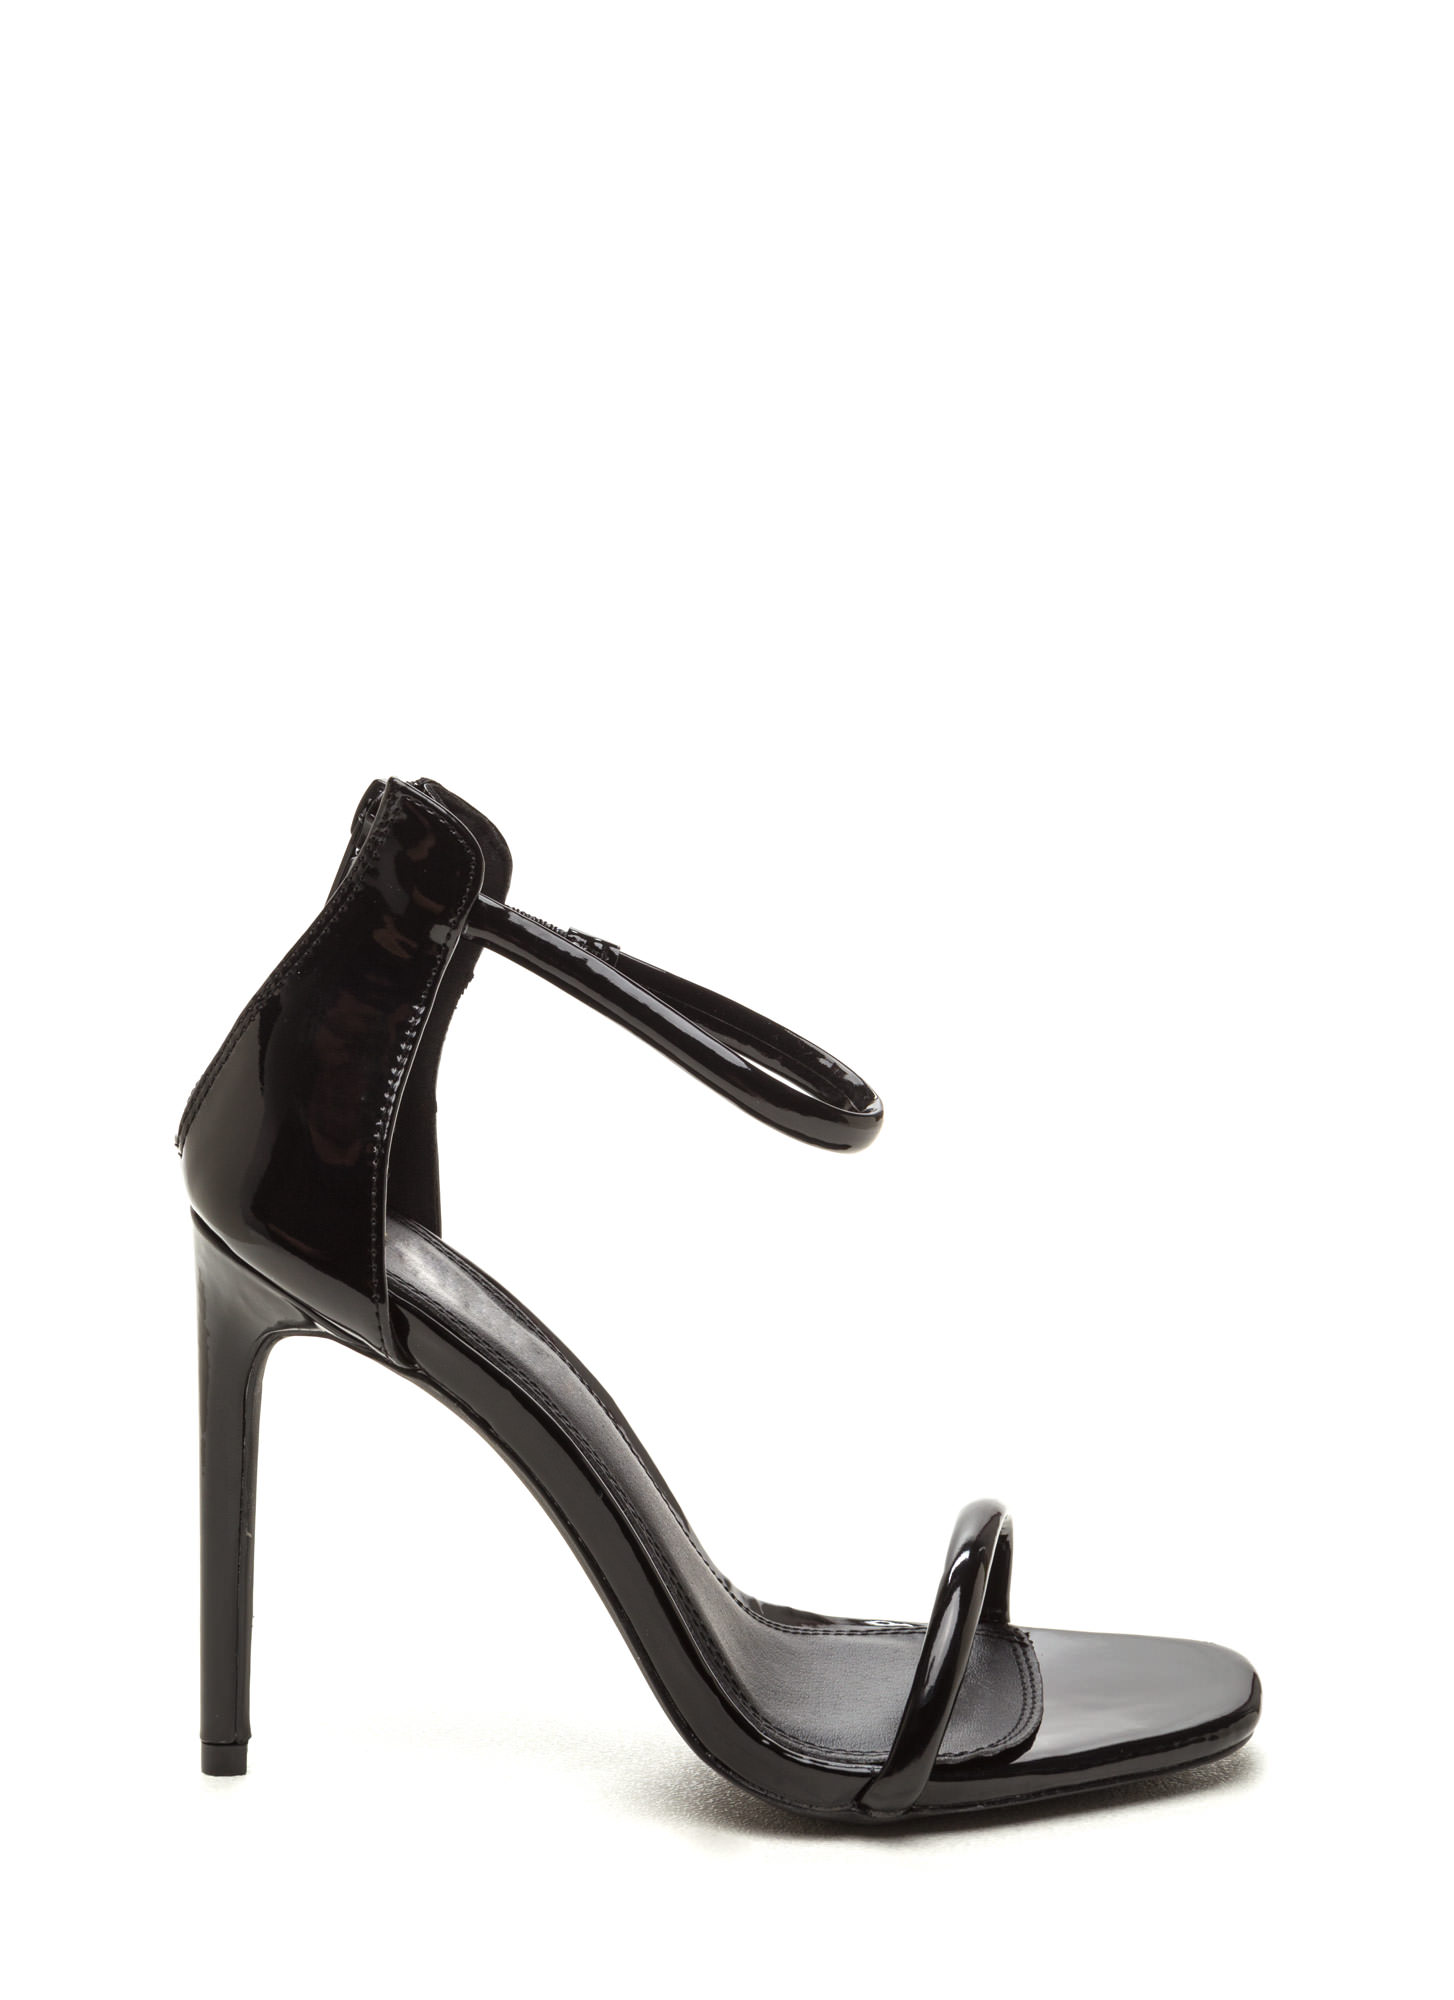 Black Patent Heels With Ankle Strap